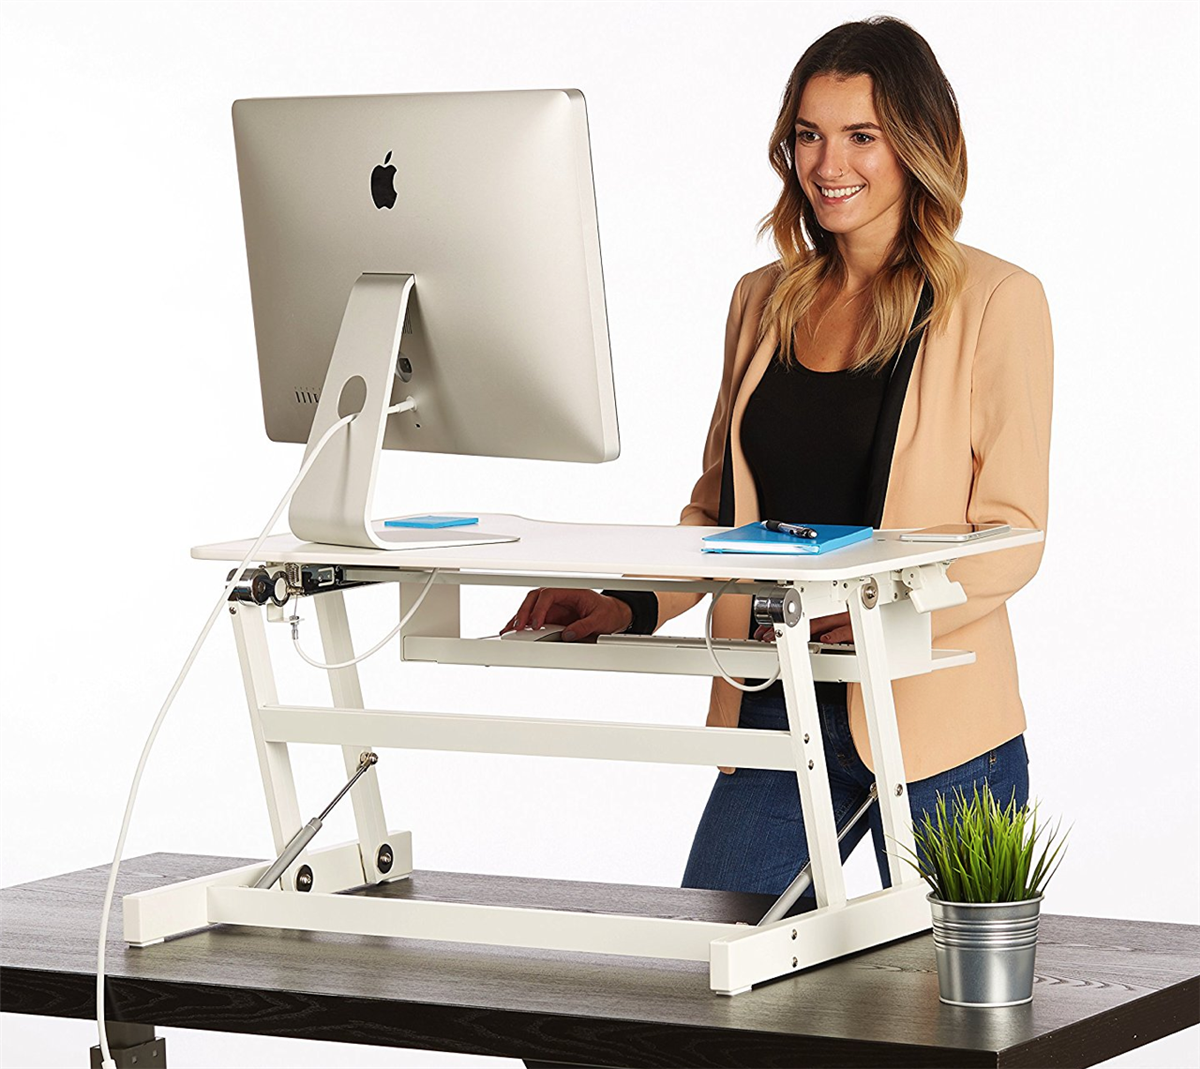 White Standing Desk The Deskriser Height Adjustable Heavy Duty Sit To Stand Office Desk Supports Up To 50 Lbs 32 Wide Sit Stand Up Desk Converter Adjustable Standing